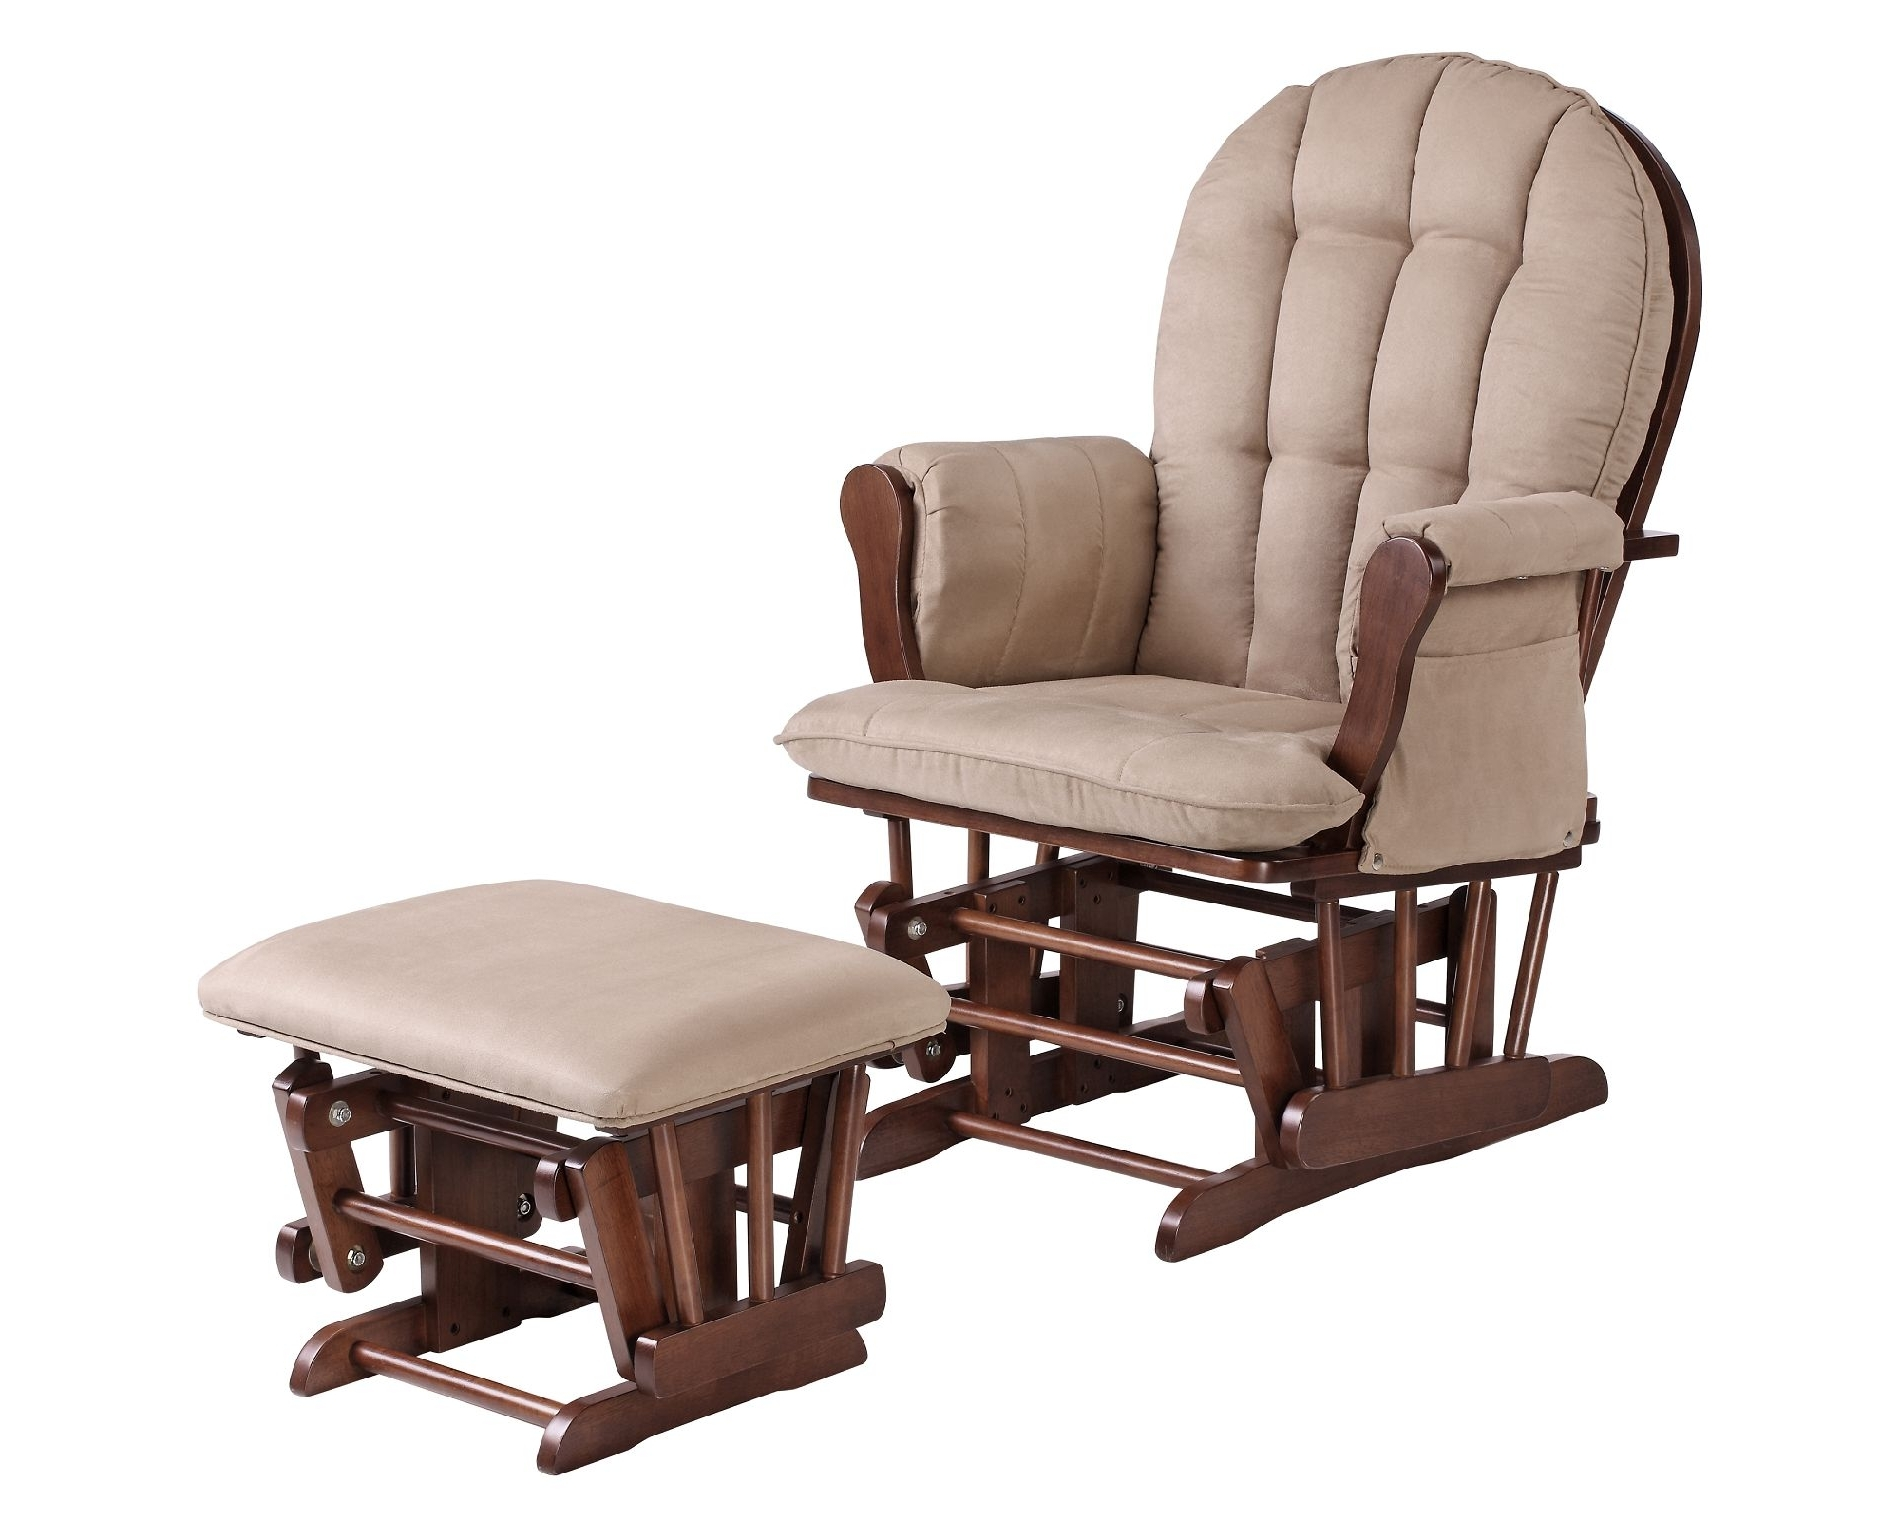 Lovely Swivel Glider Chair Target F50X About Remodel Rustic Home Regarding 2019 Rocking Chairs At Target (View 7 of 20)